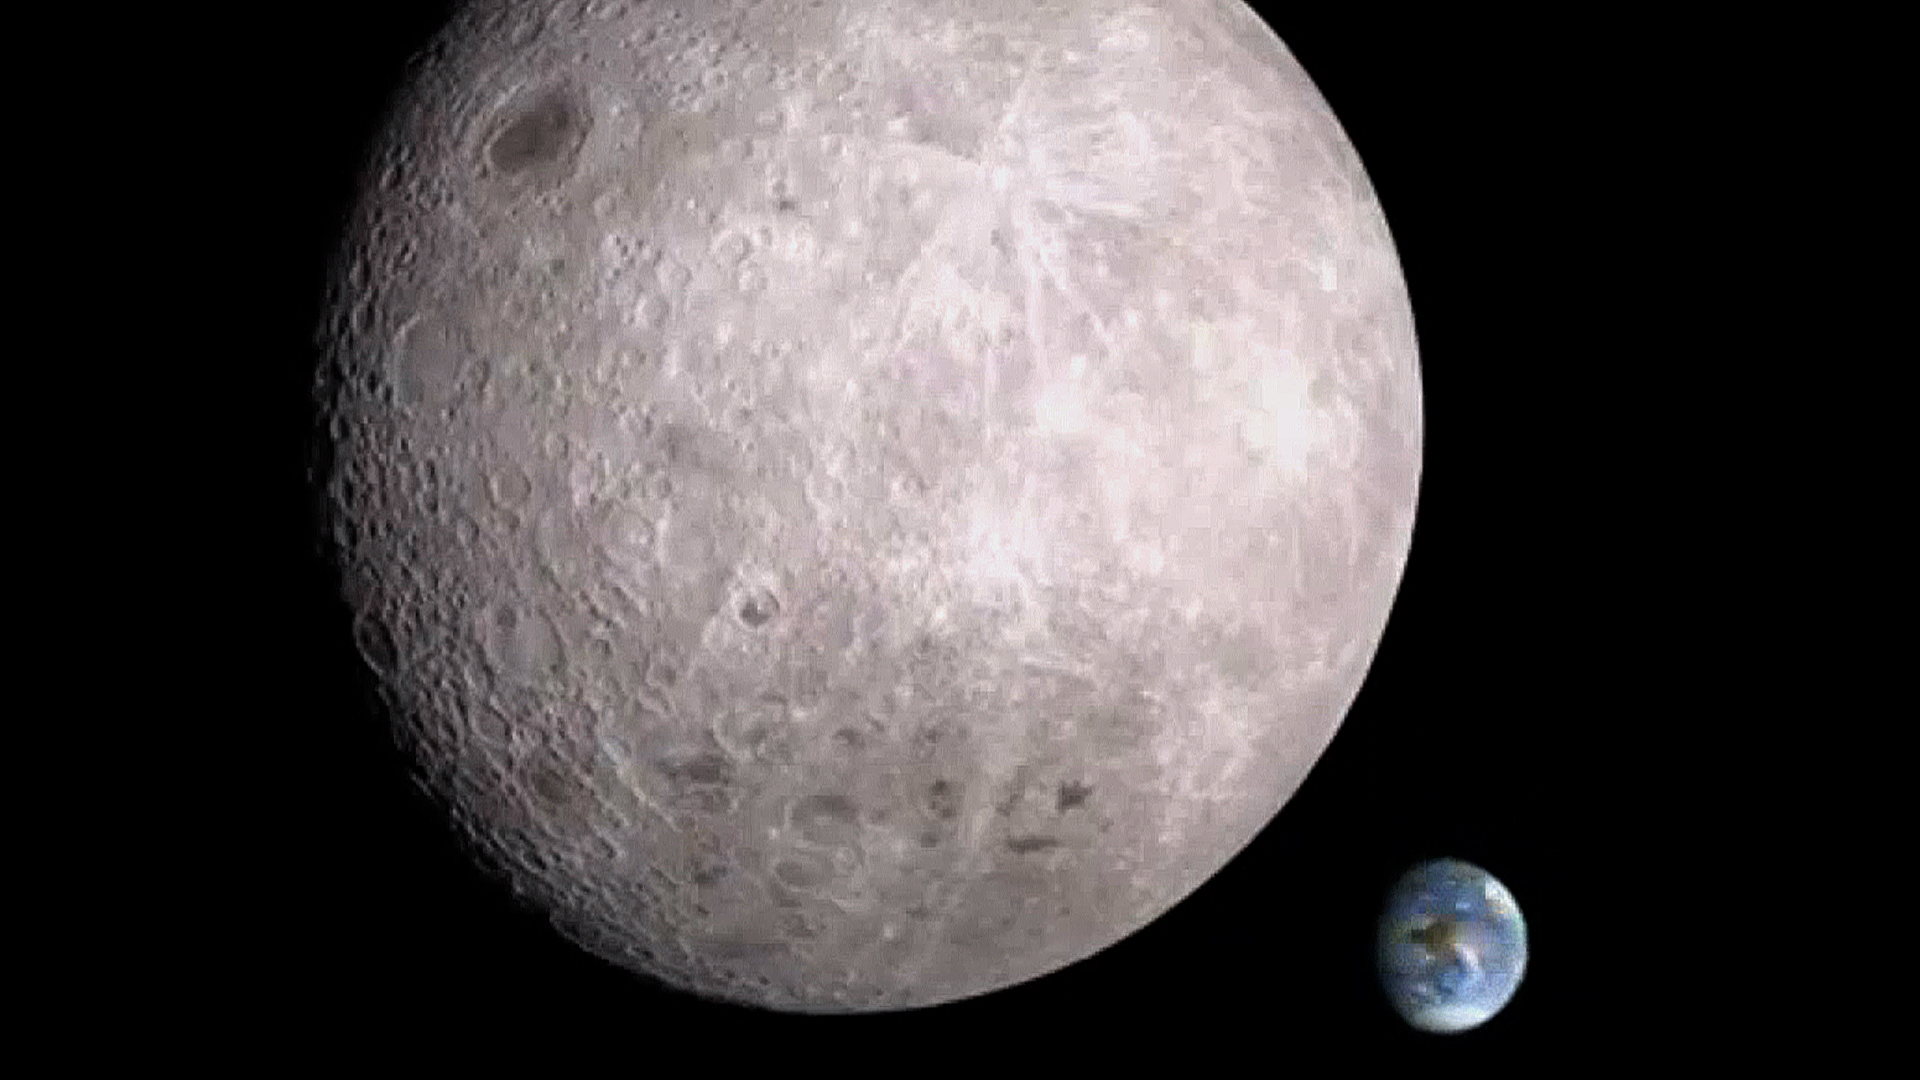 nasa reveals dark side of moon - photo #8